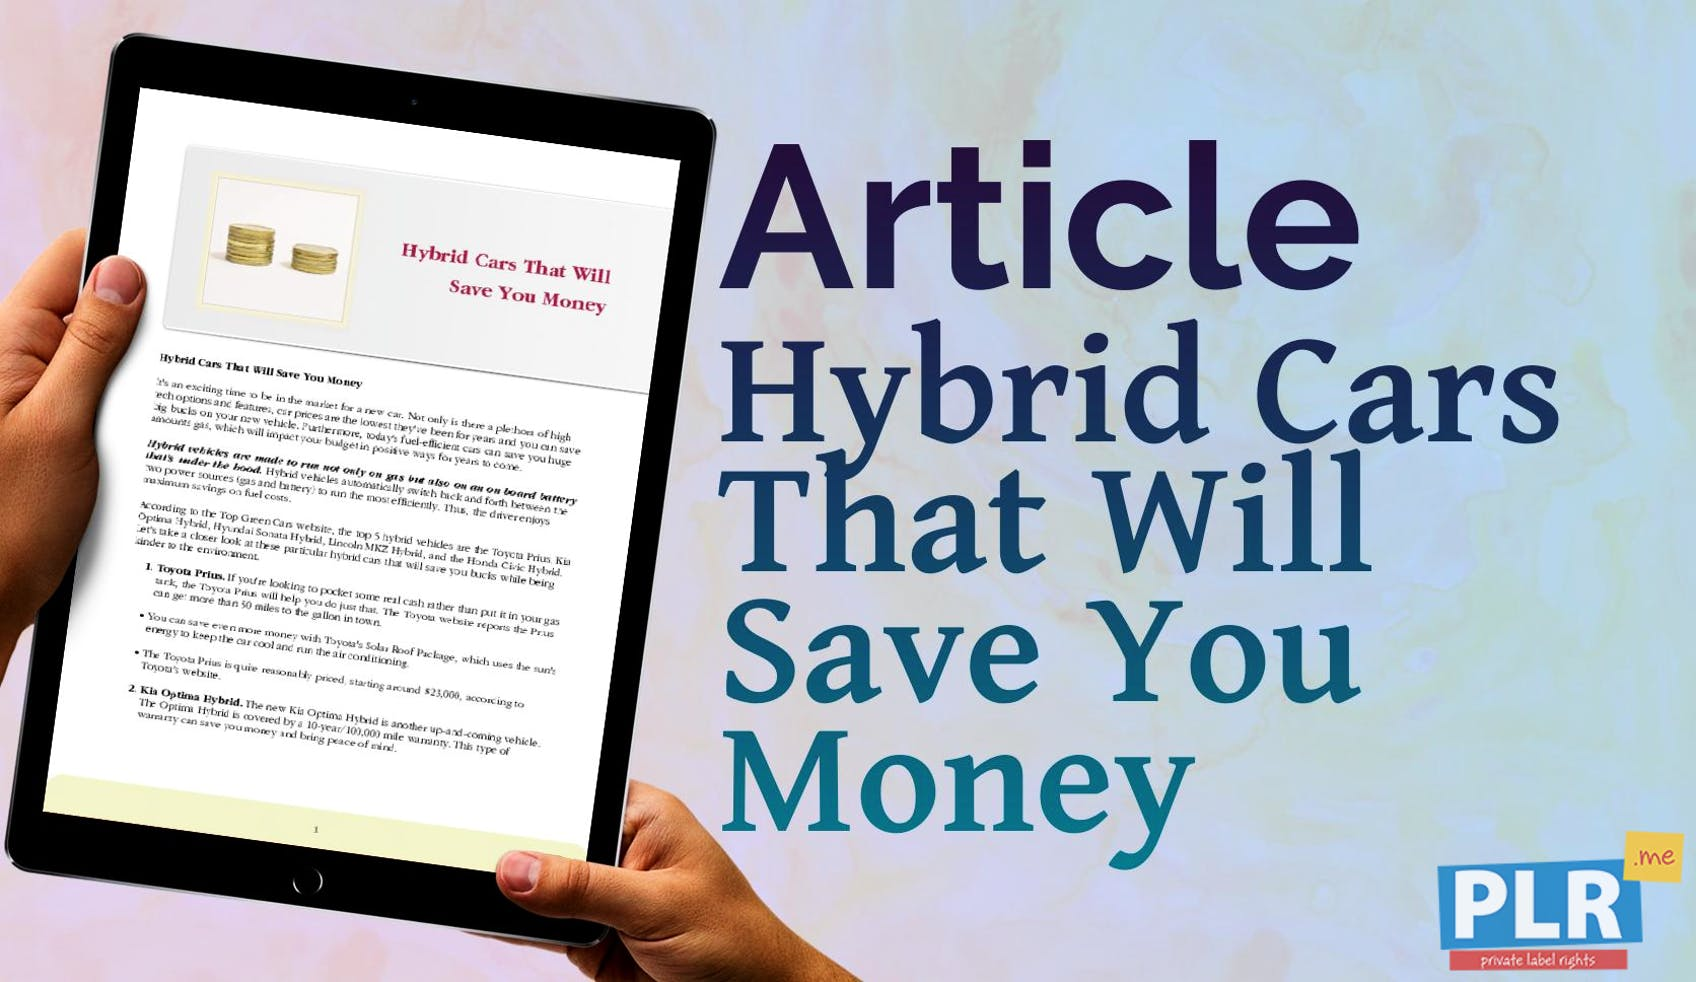 Plr Articles Blog Posts Hybrid Cars That Will Save You Money Me